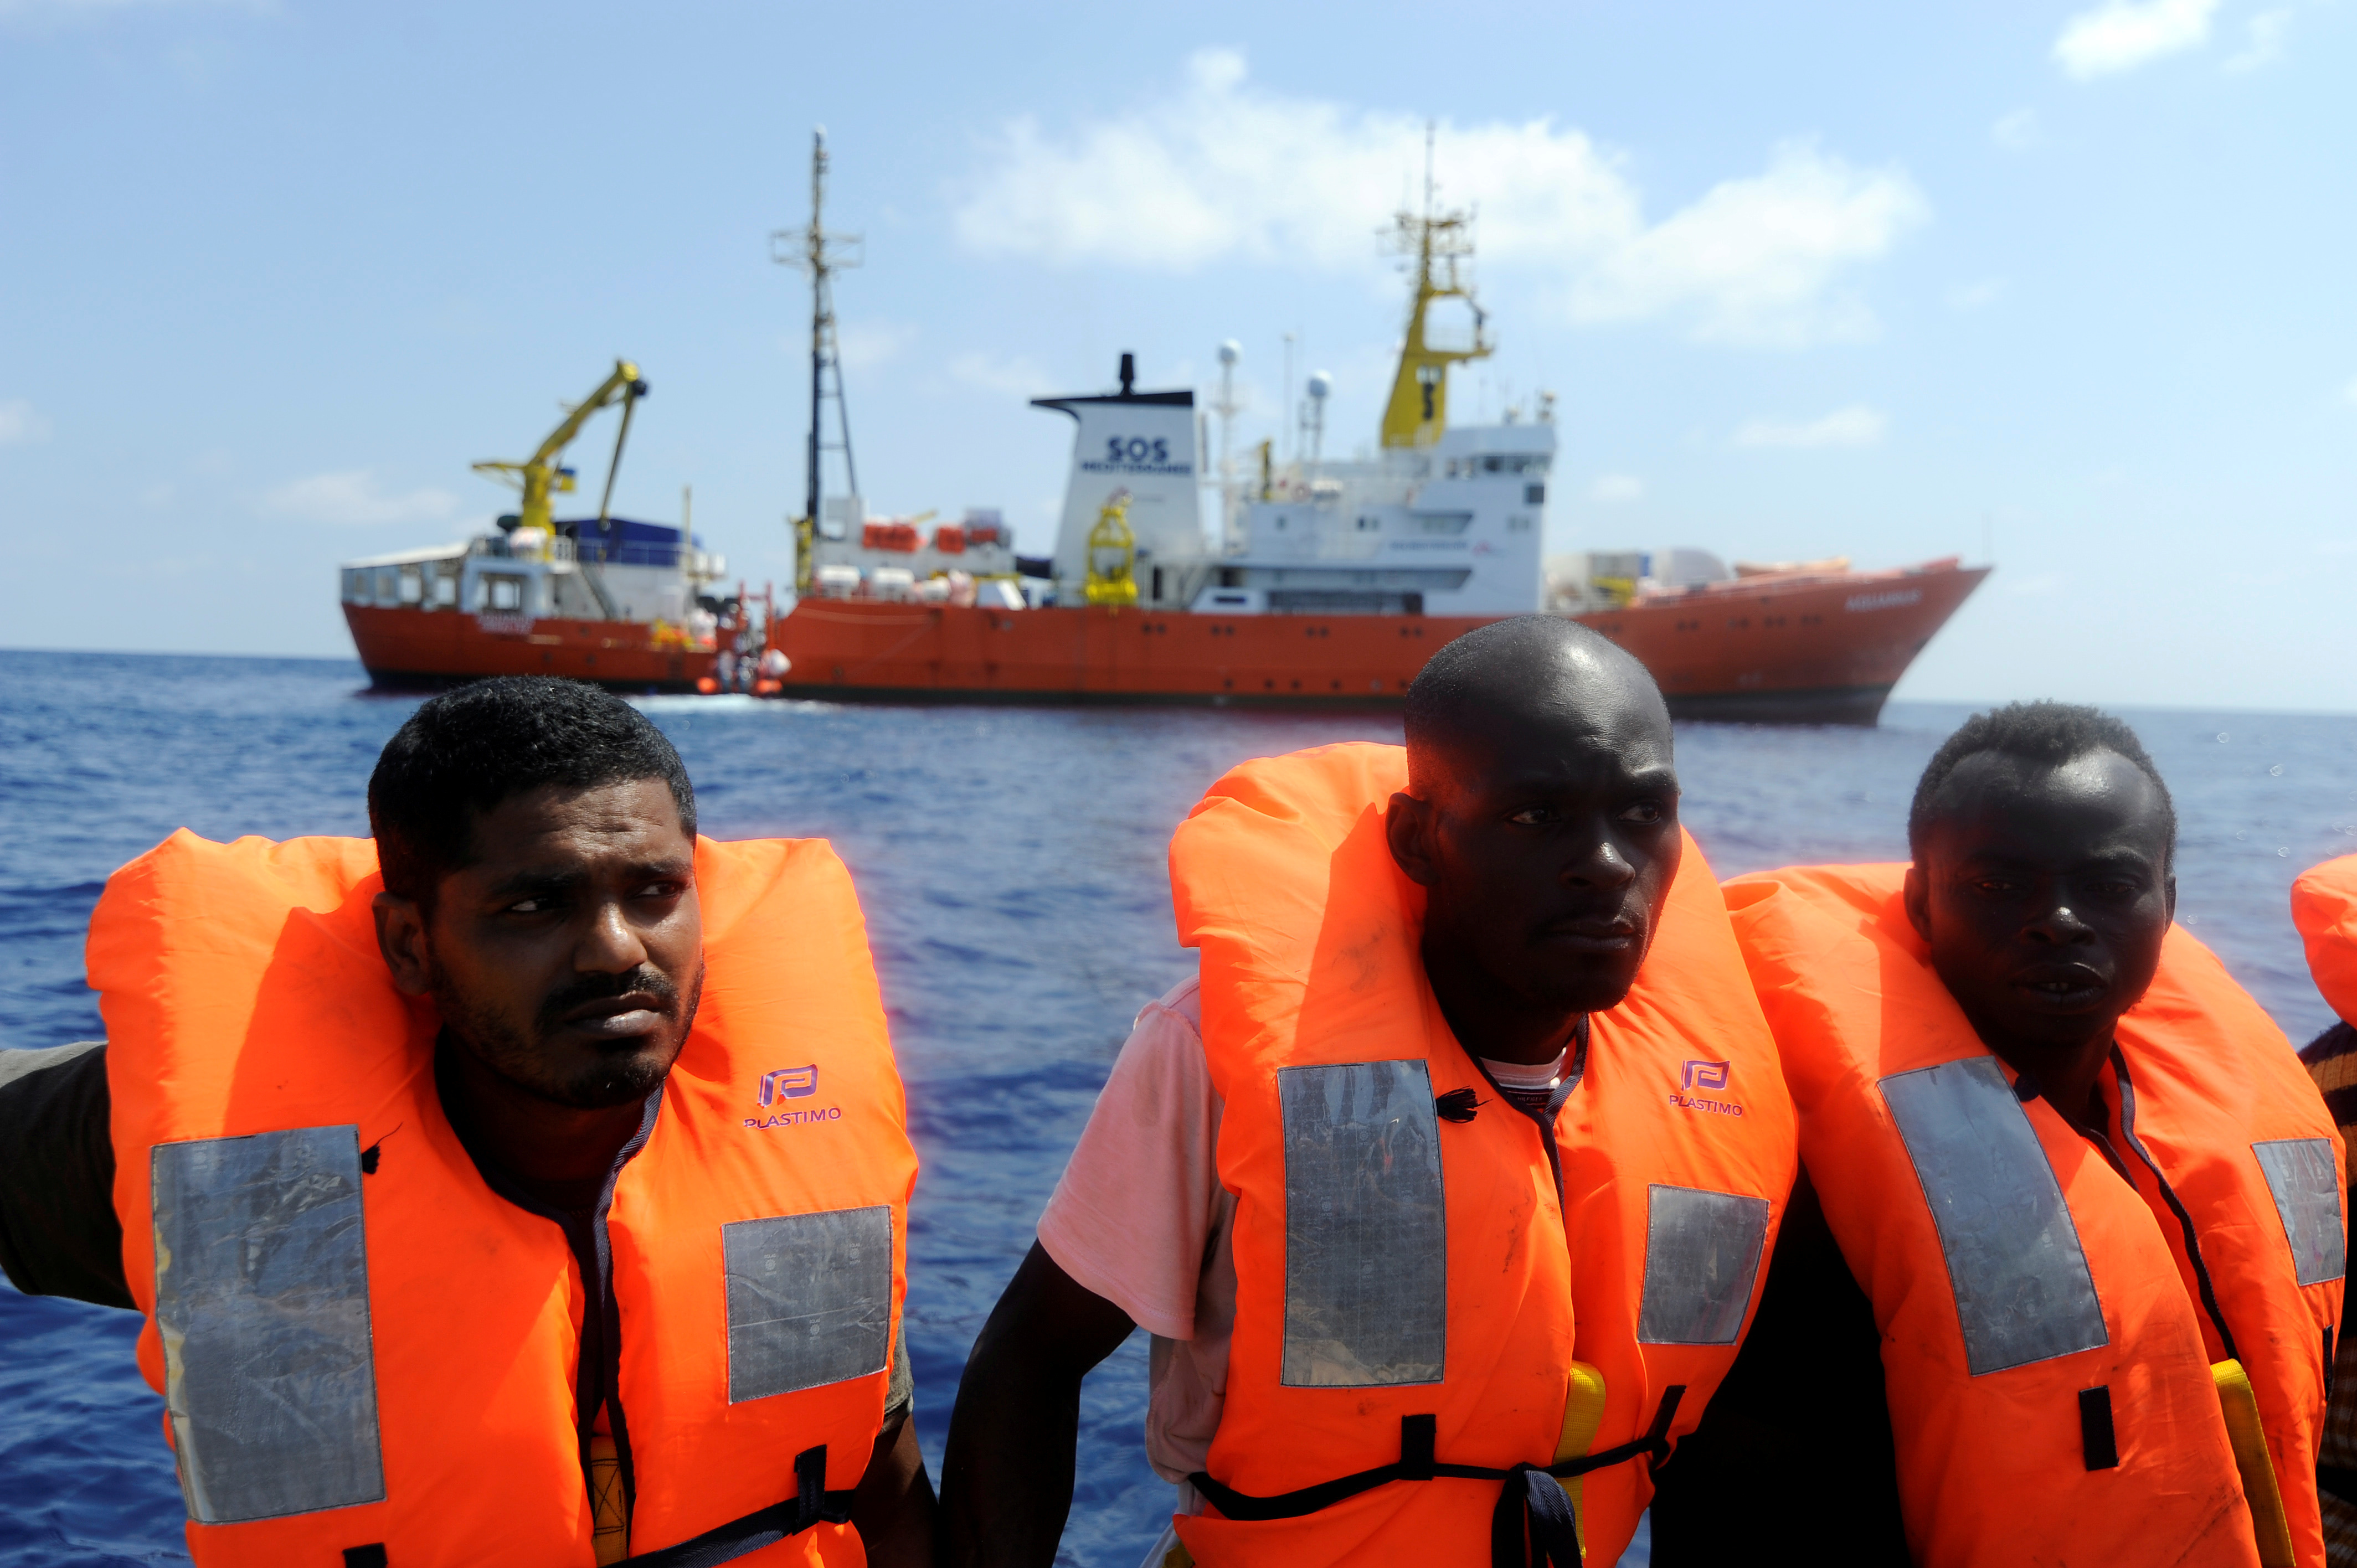 Migrants are rescued by SOS Mediterranee organization and Doctors Without Borders during a search and rescue  operation with the MV Aquarius rescue ship, off the Libyan Coast, Aug. 10, 2018.